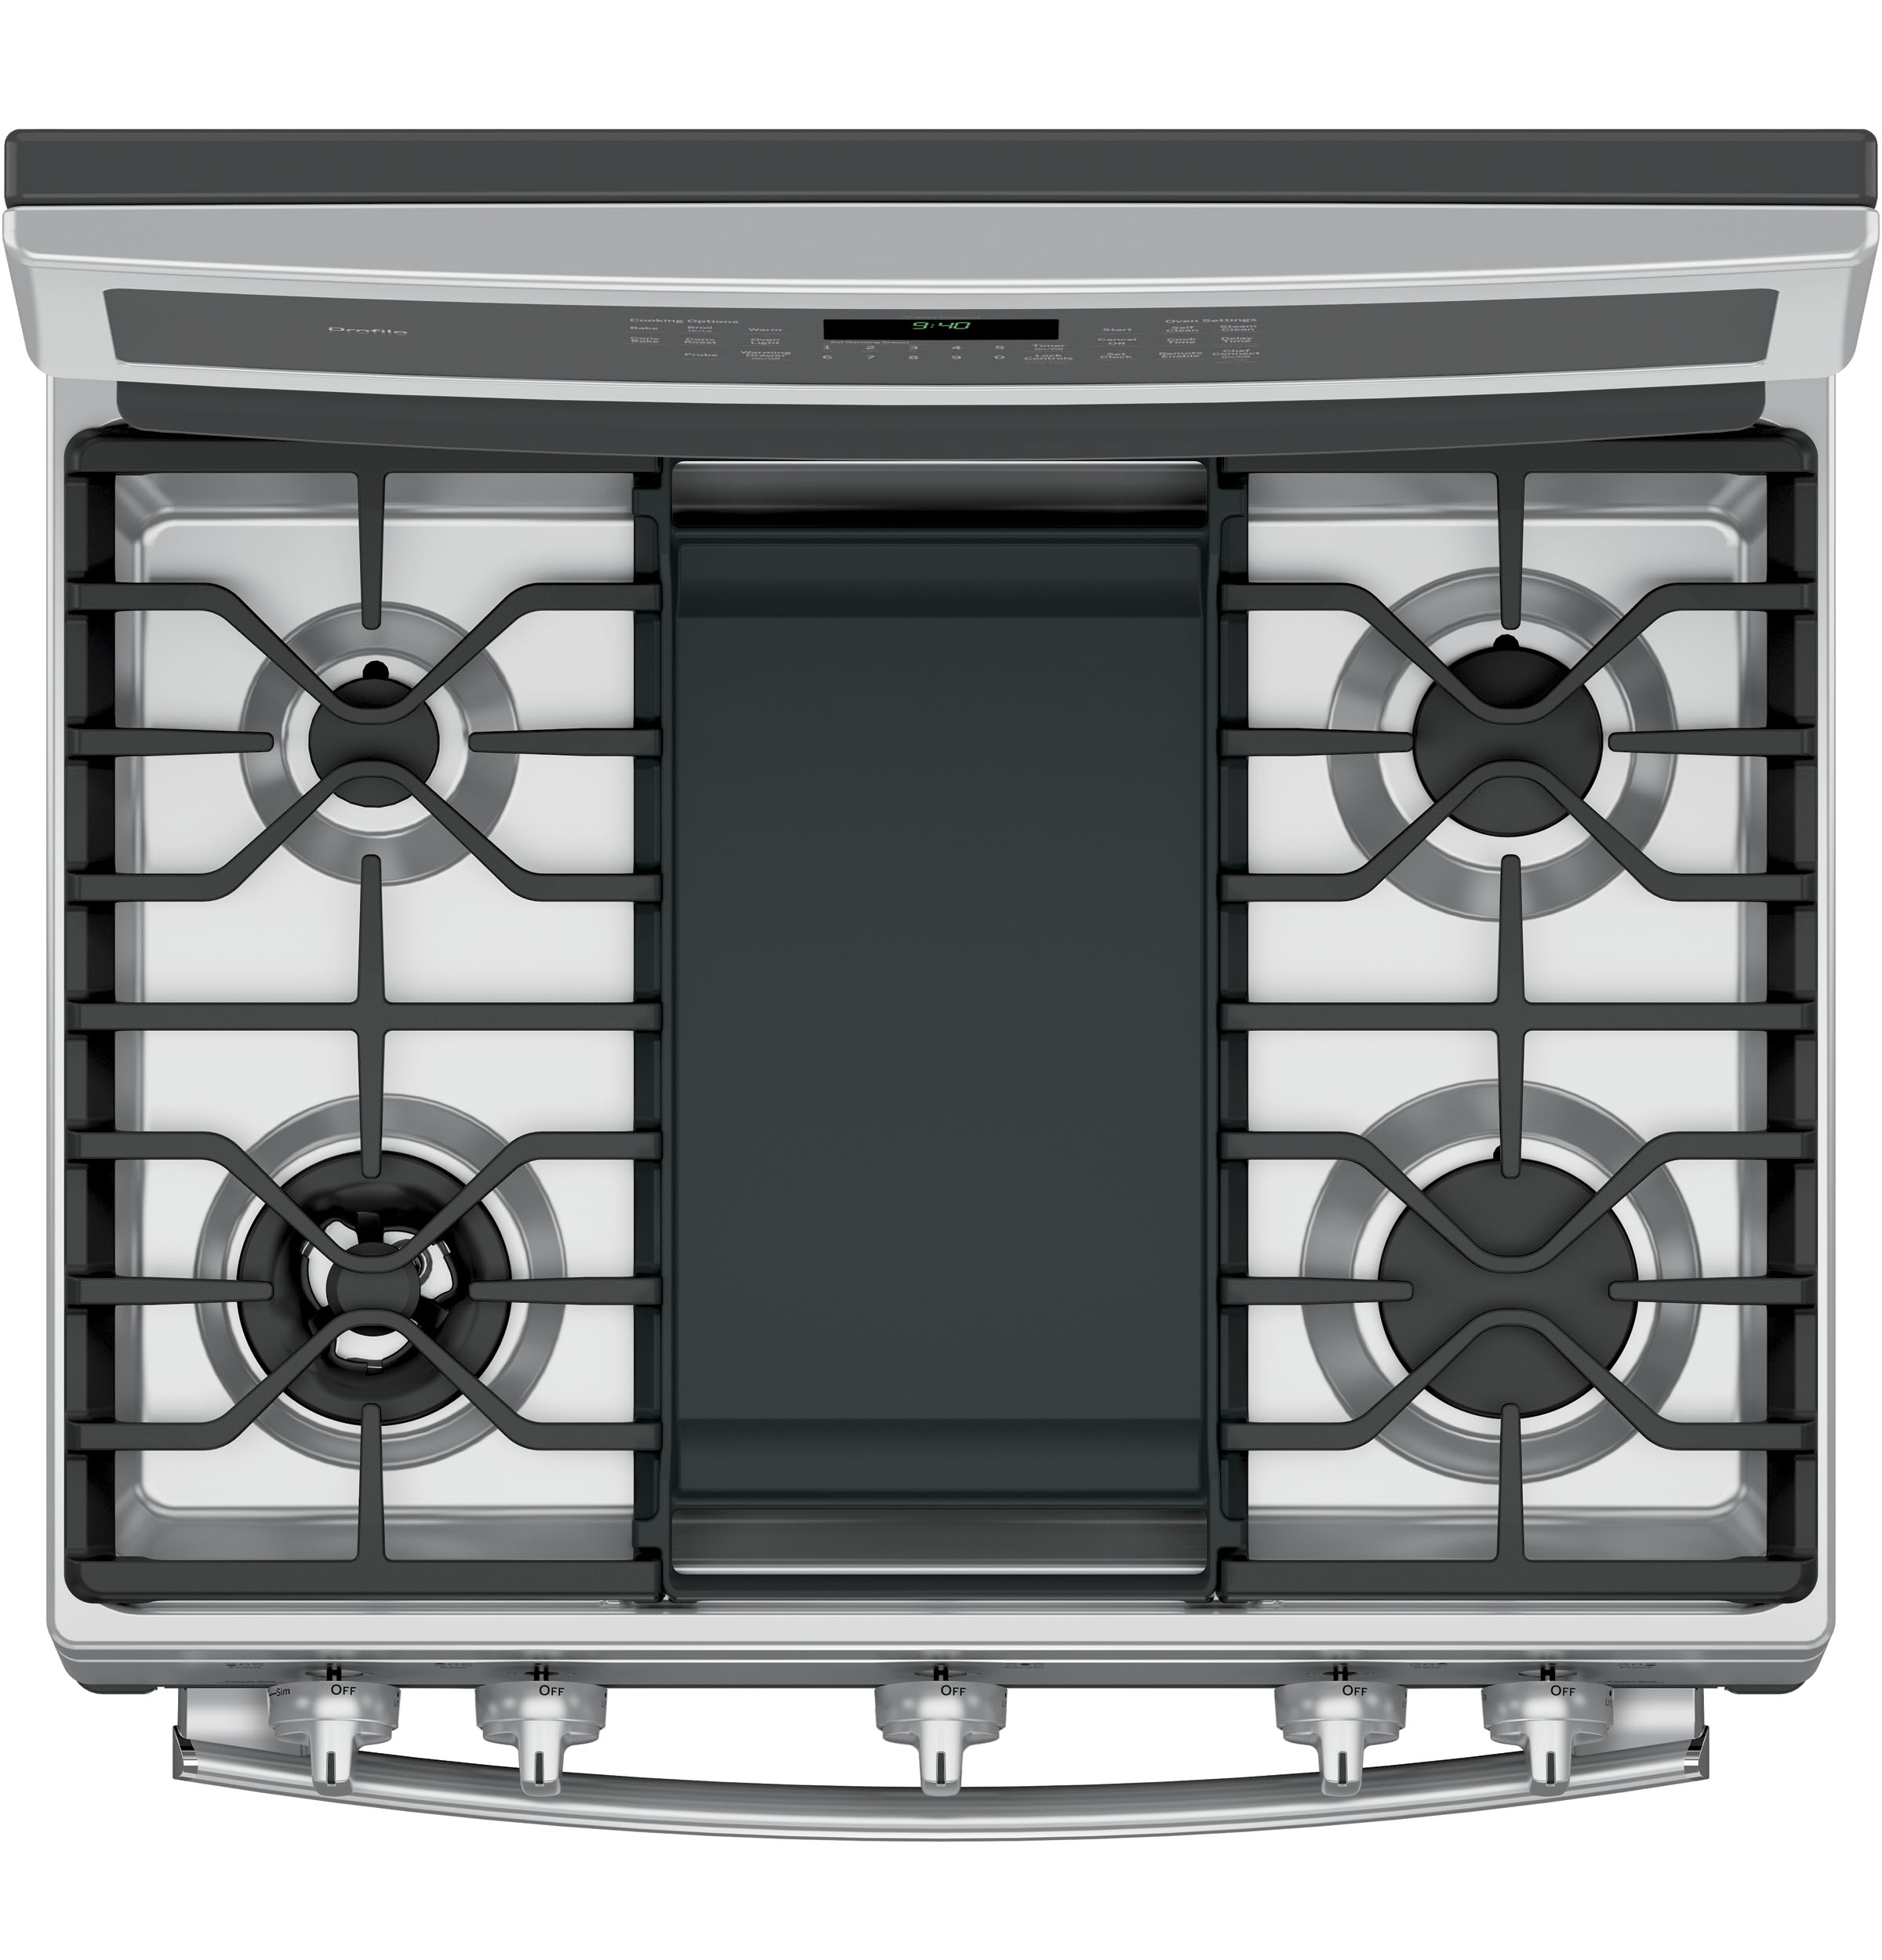 GE Profile PGB940ZEJSS 5.6 cu. ft. Freestanding Gas Convection Range - Stainless Steel